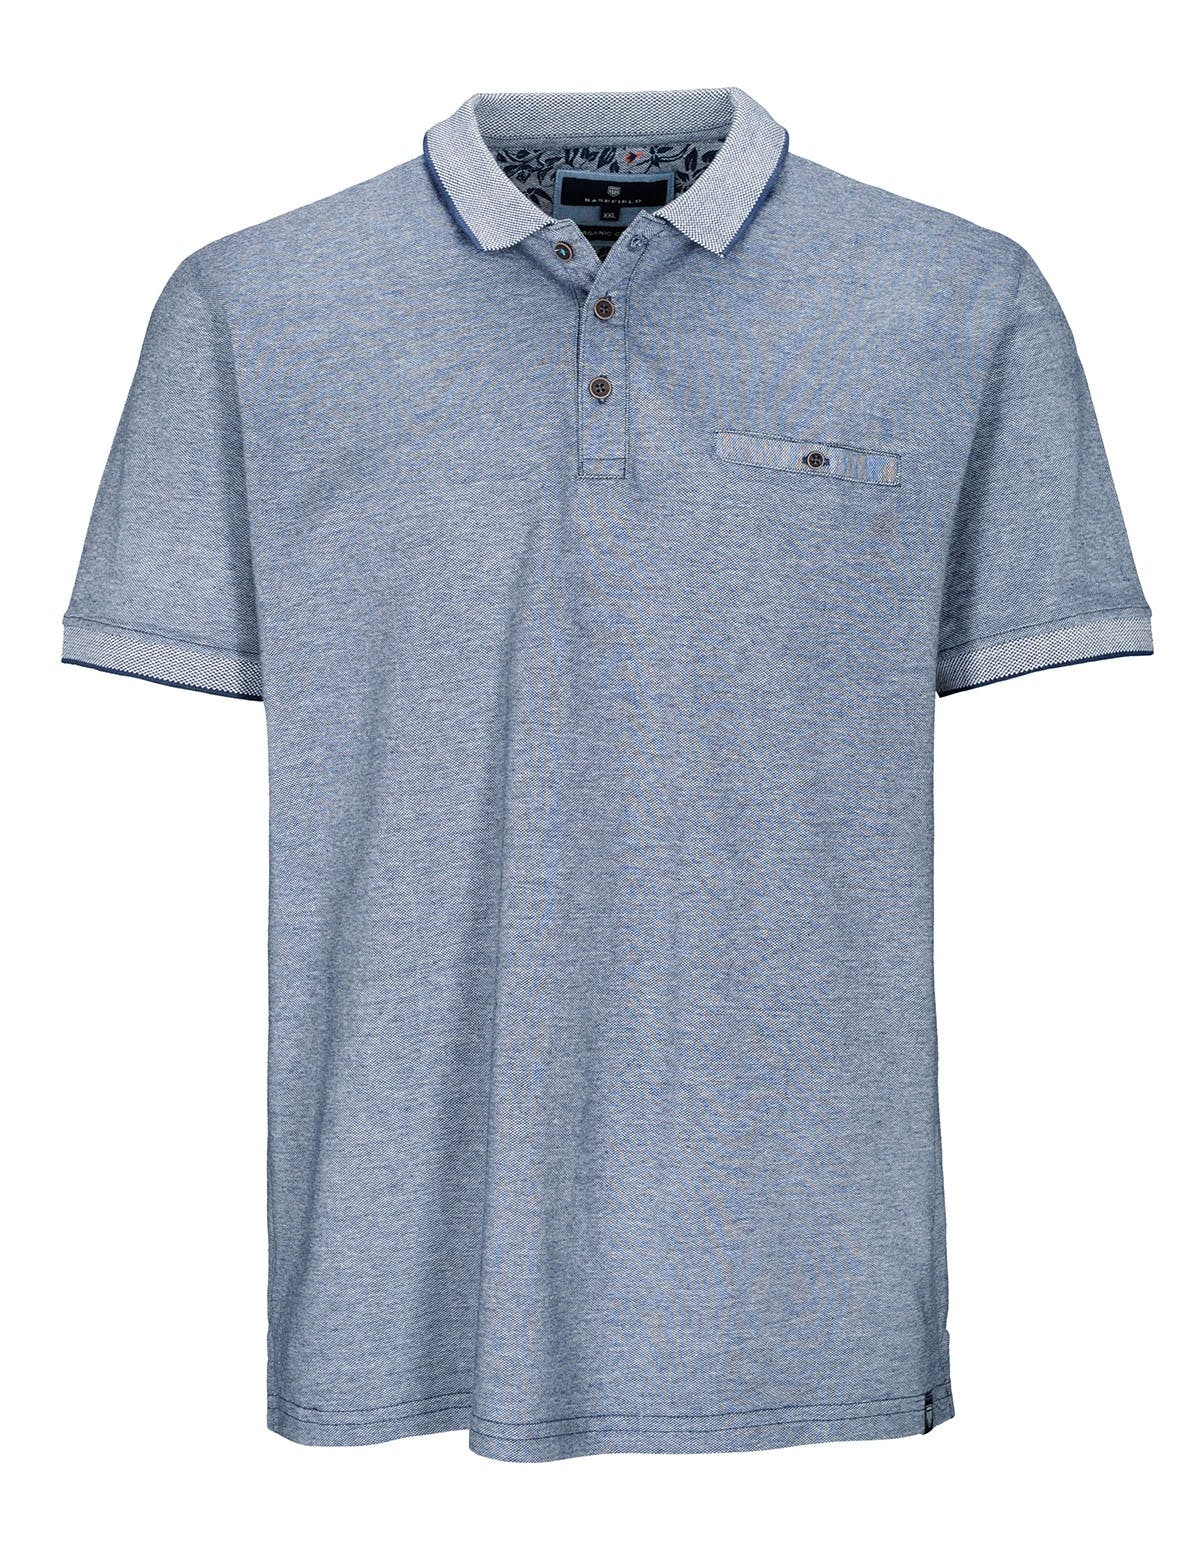 ORGANIC COTTON Polo Shirt 1/2 - Blue Navy